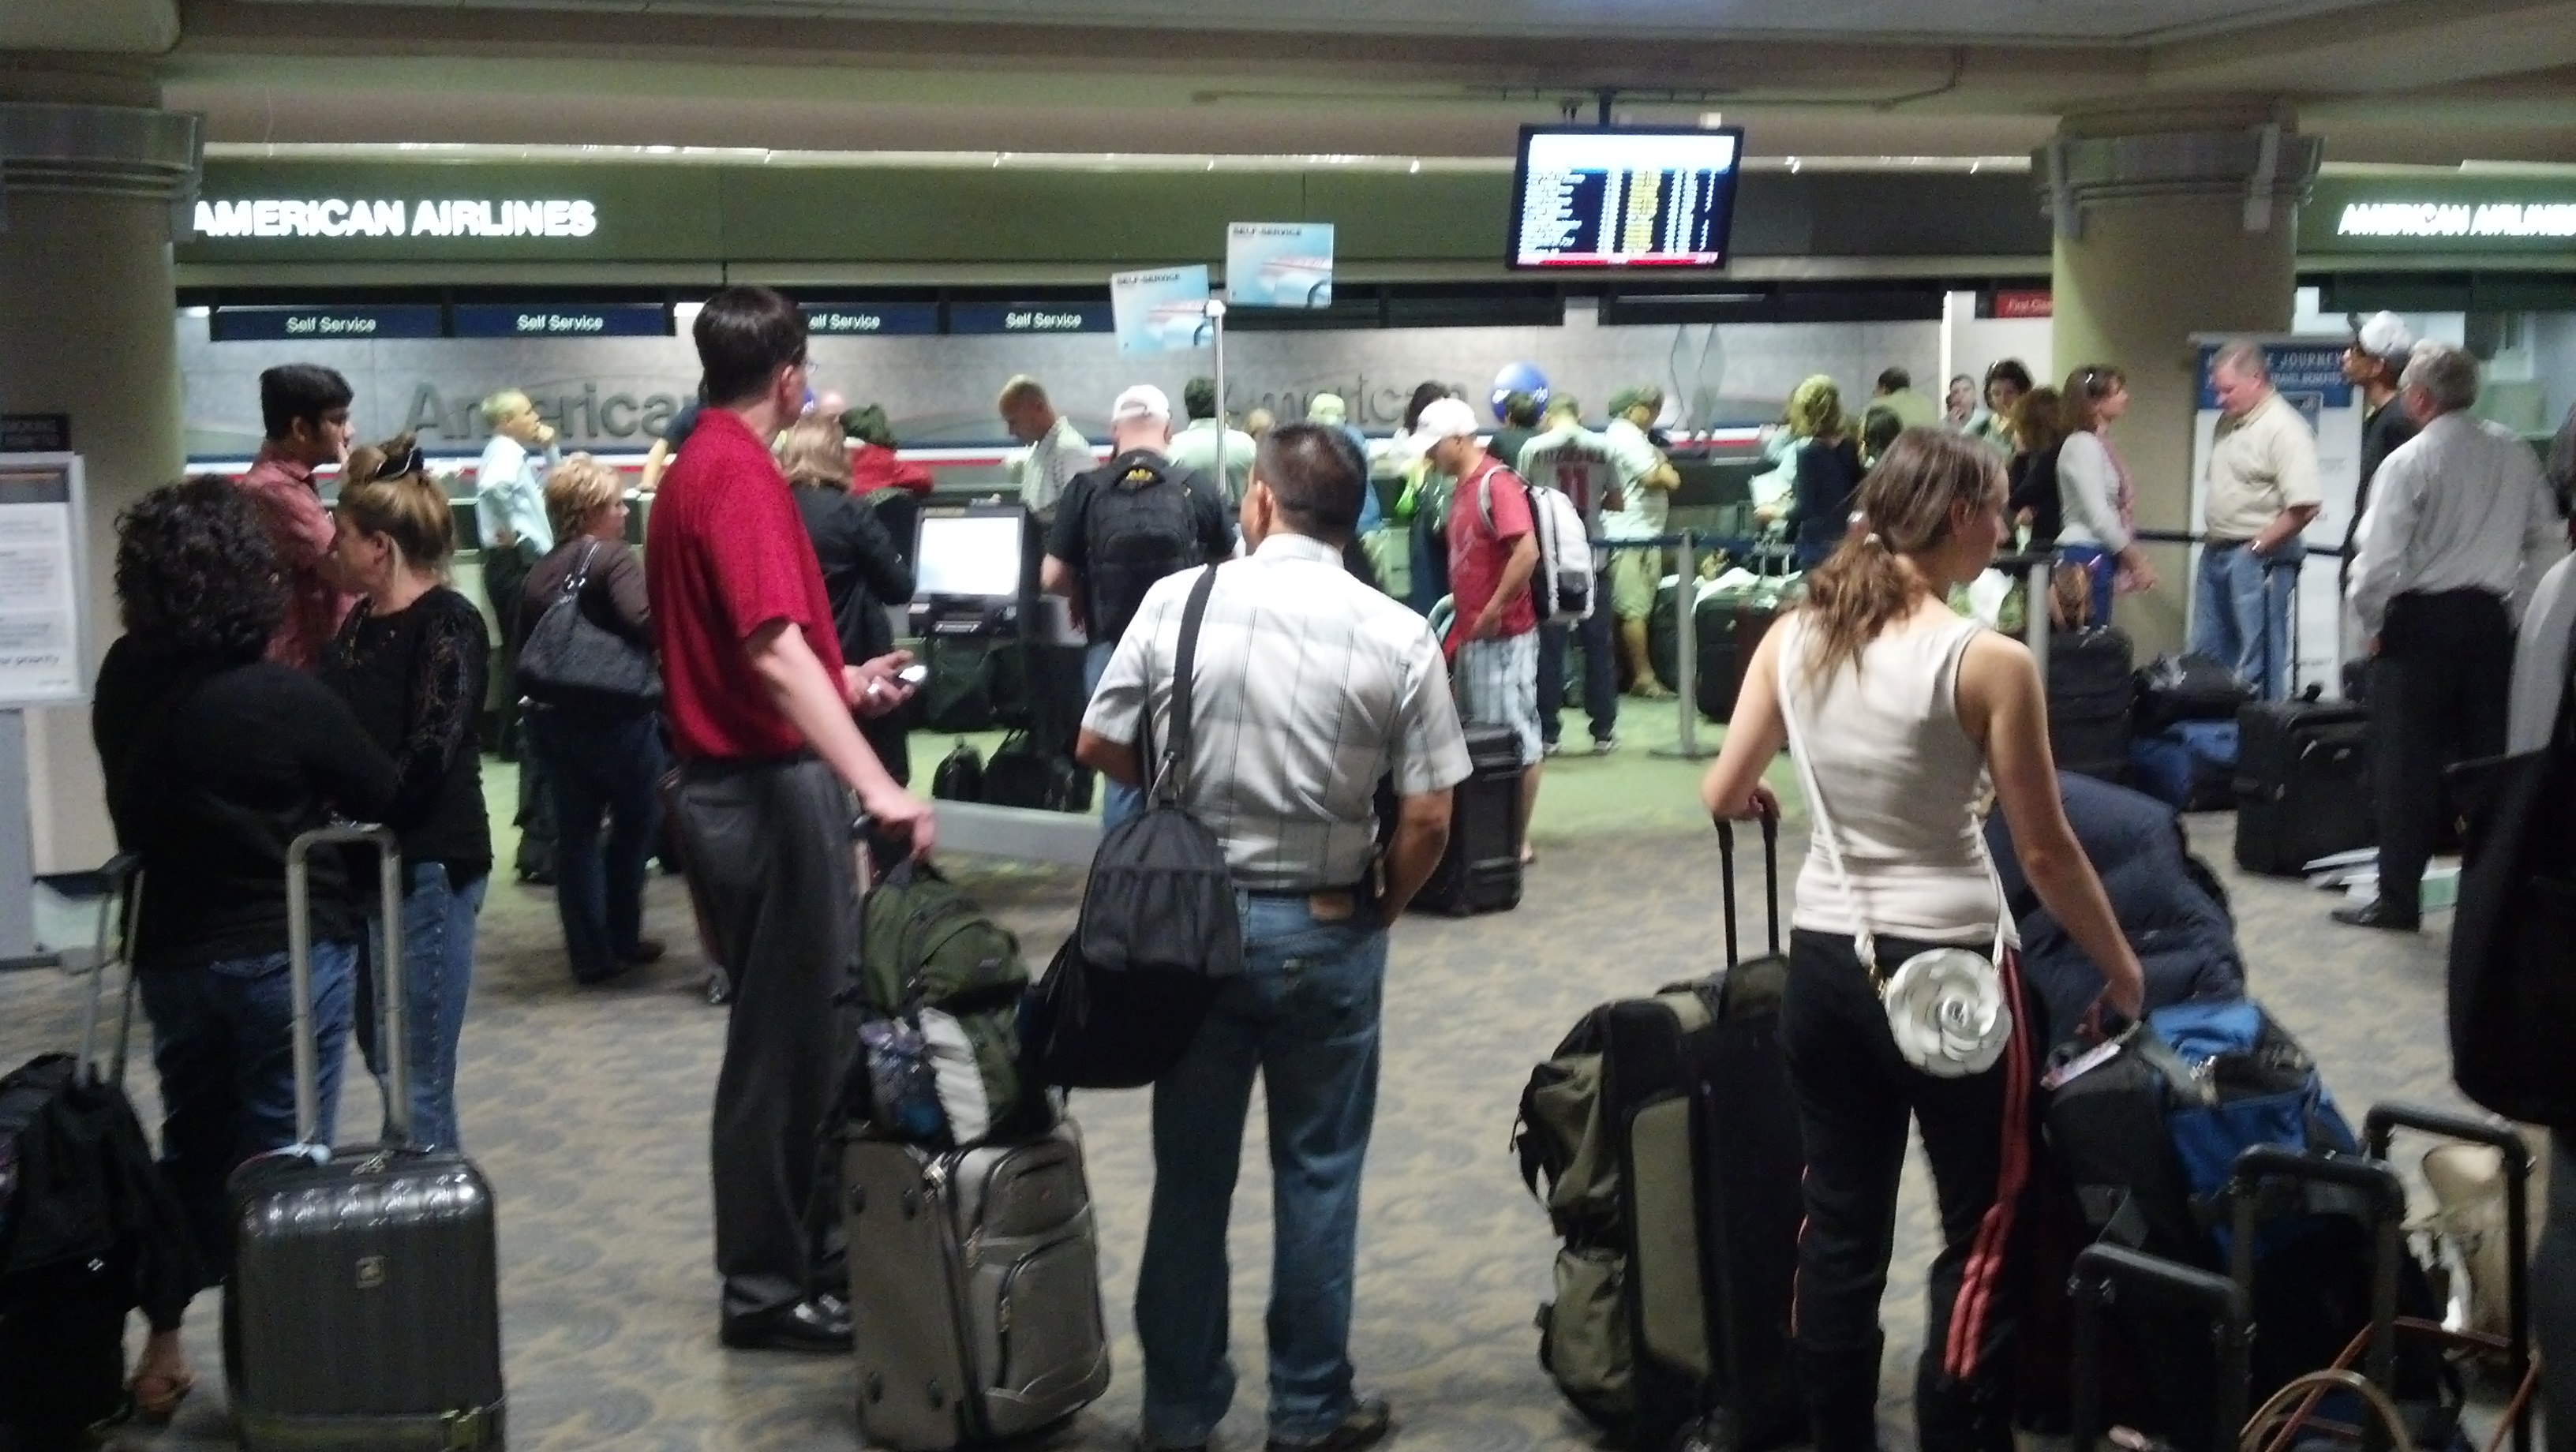 Flight Cancellation And Delayed On American Airlines